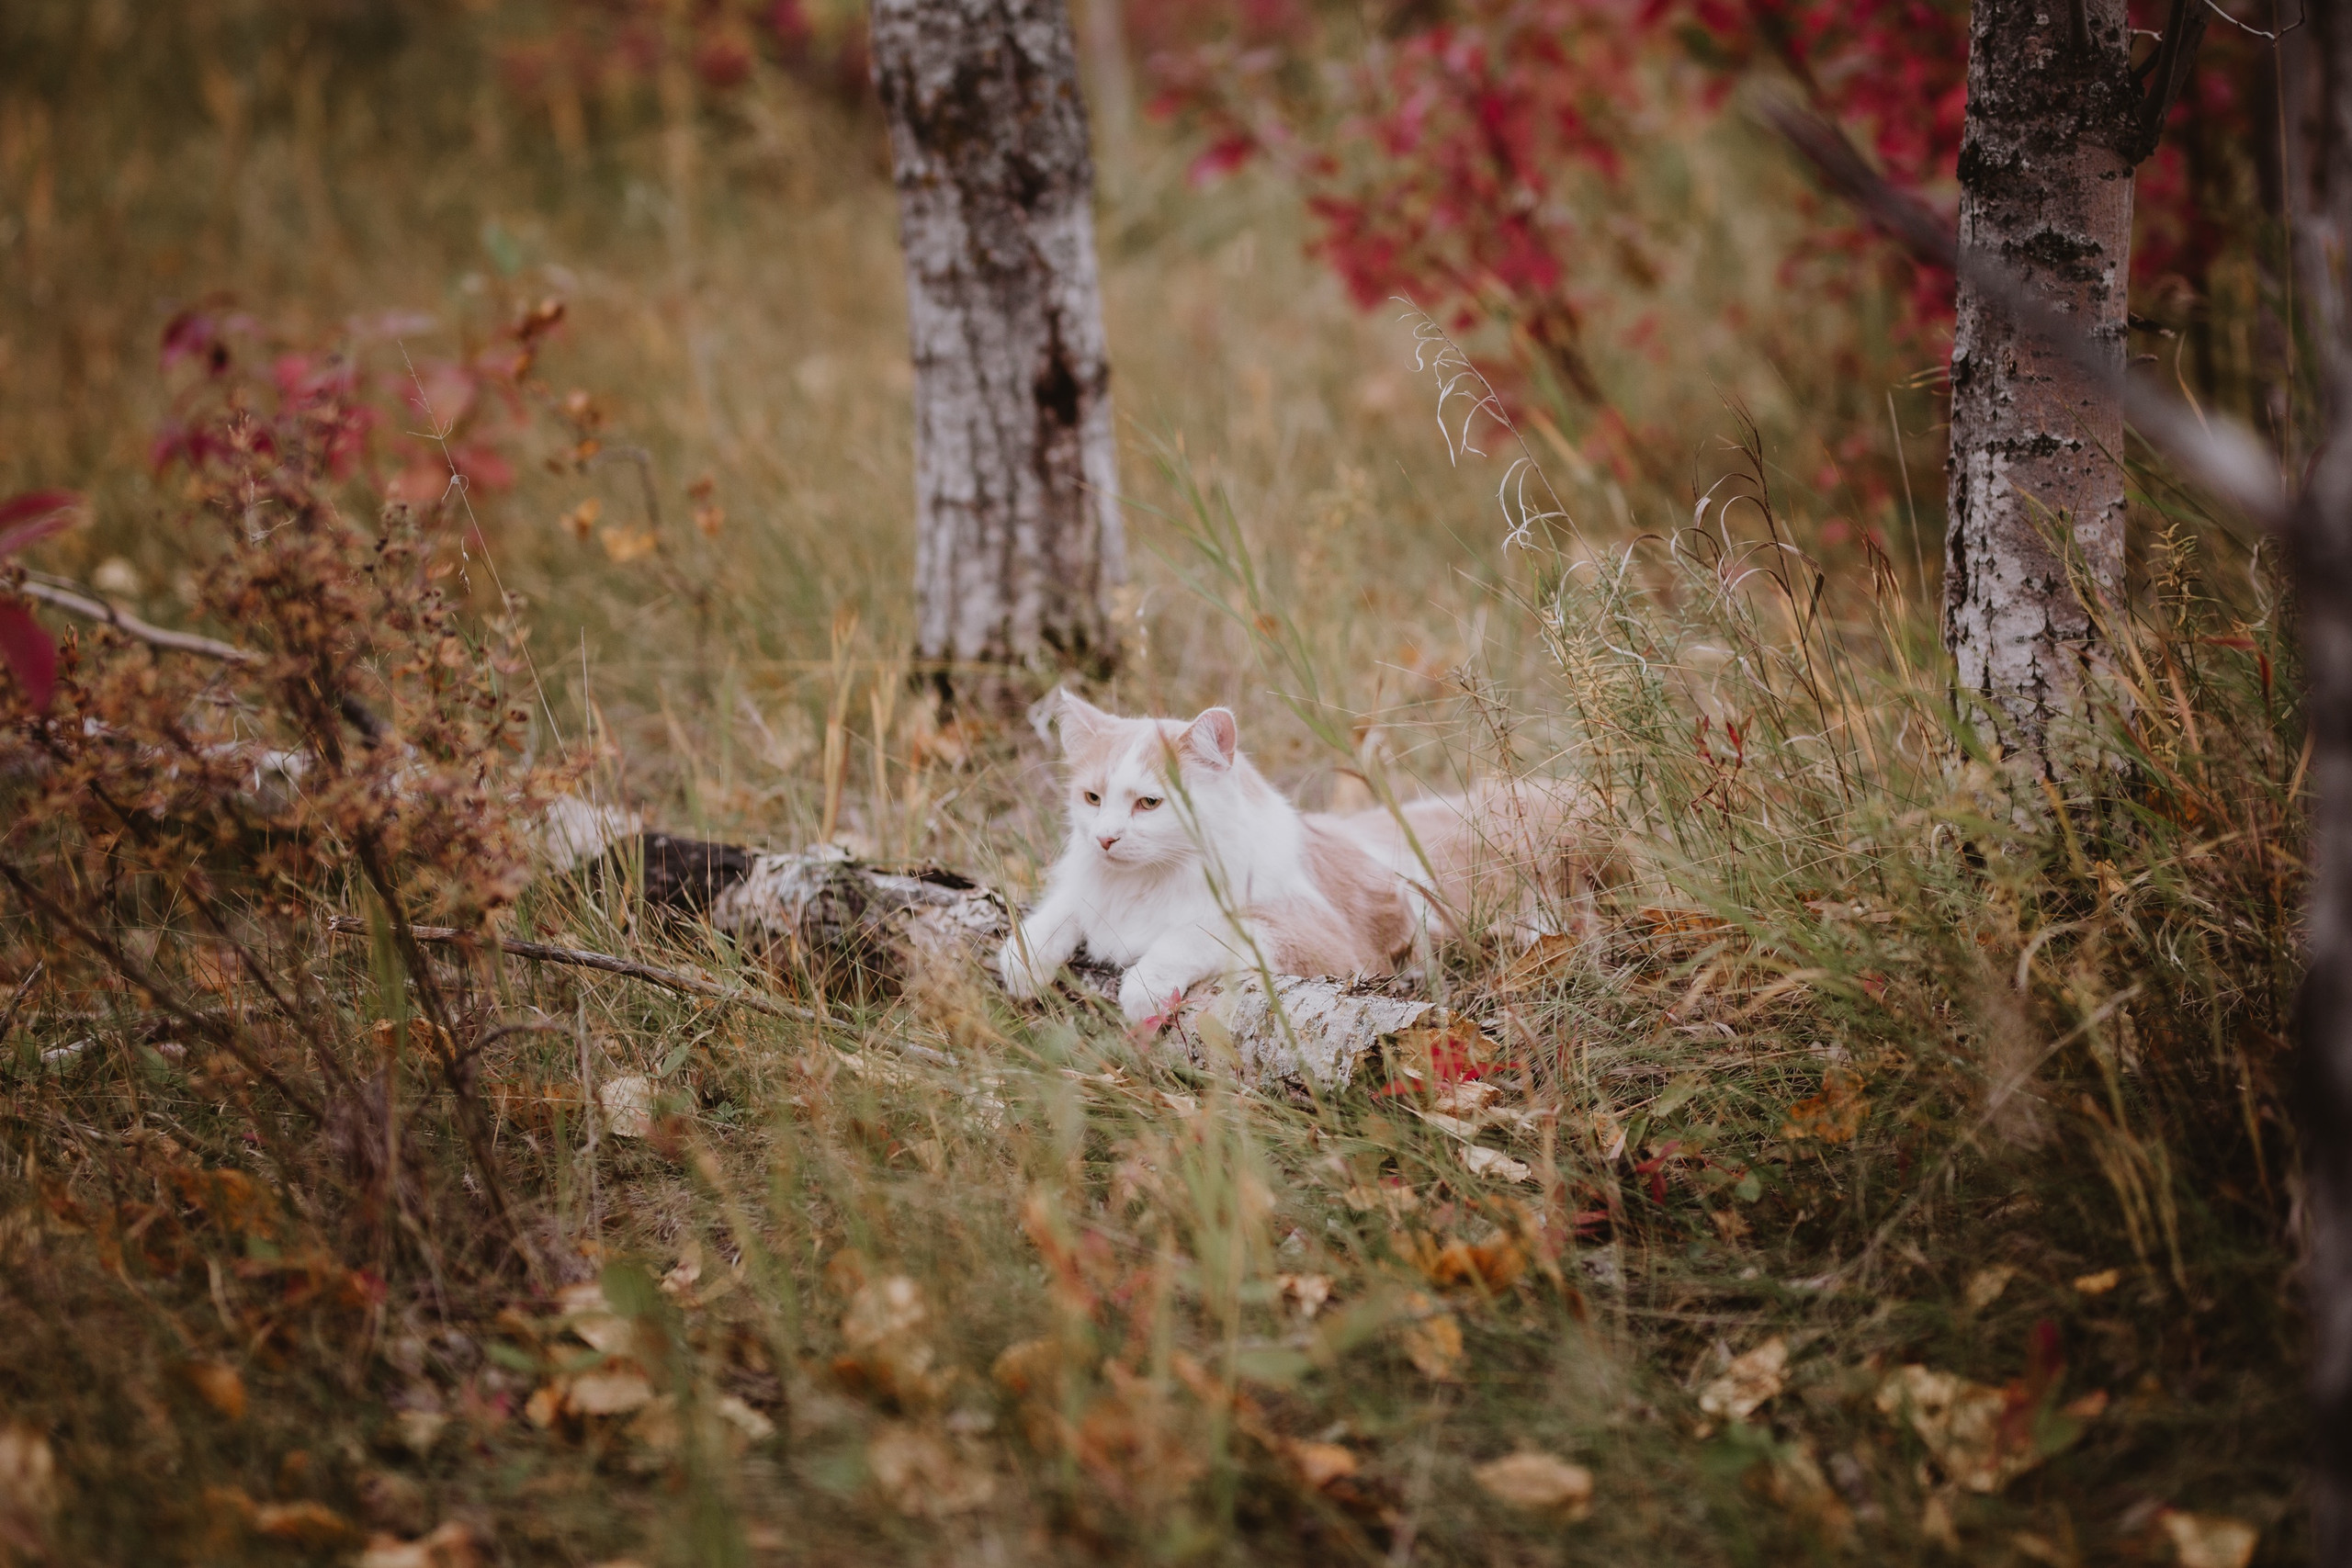 Cat Poses in the Forest during his humans fall engagement photo session.